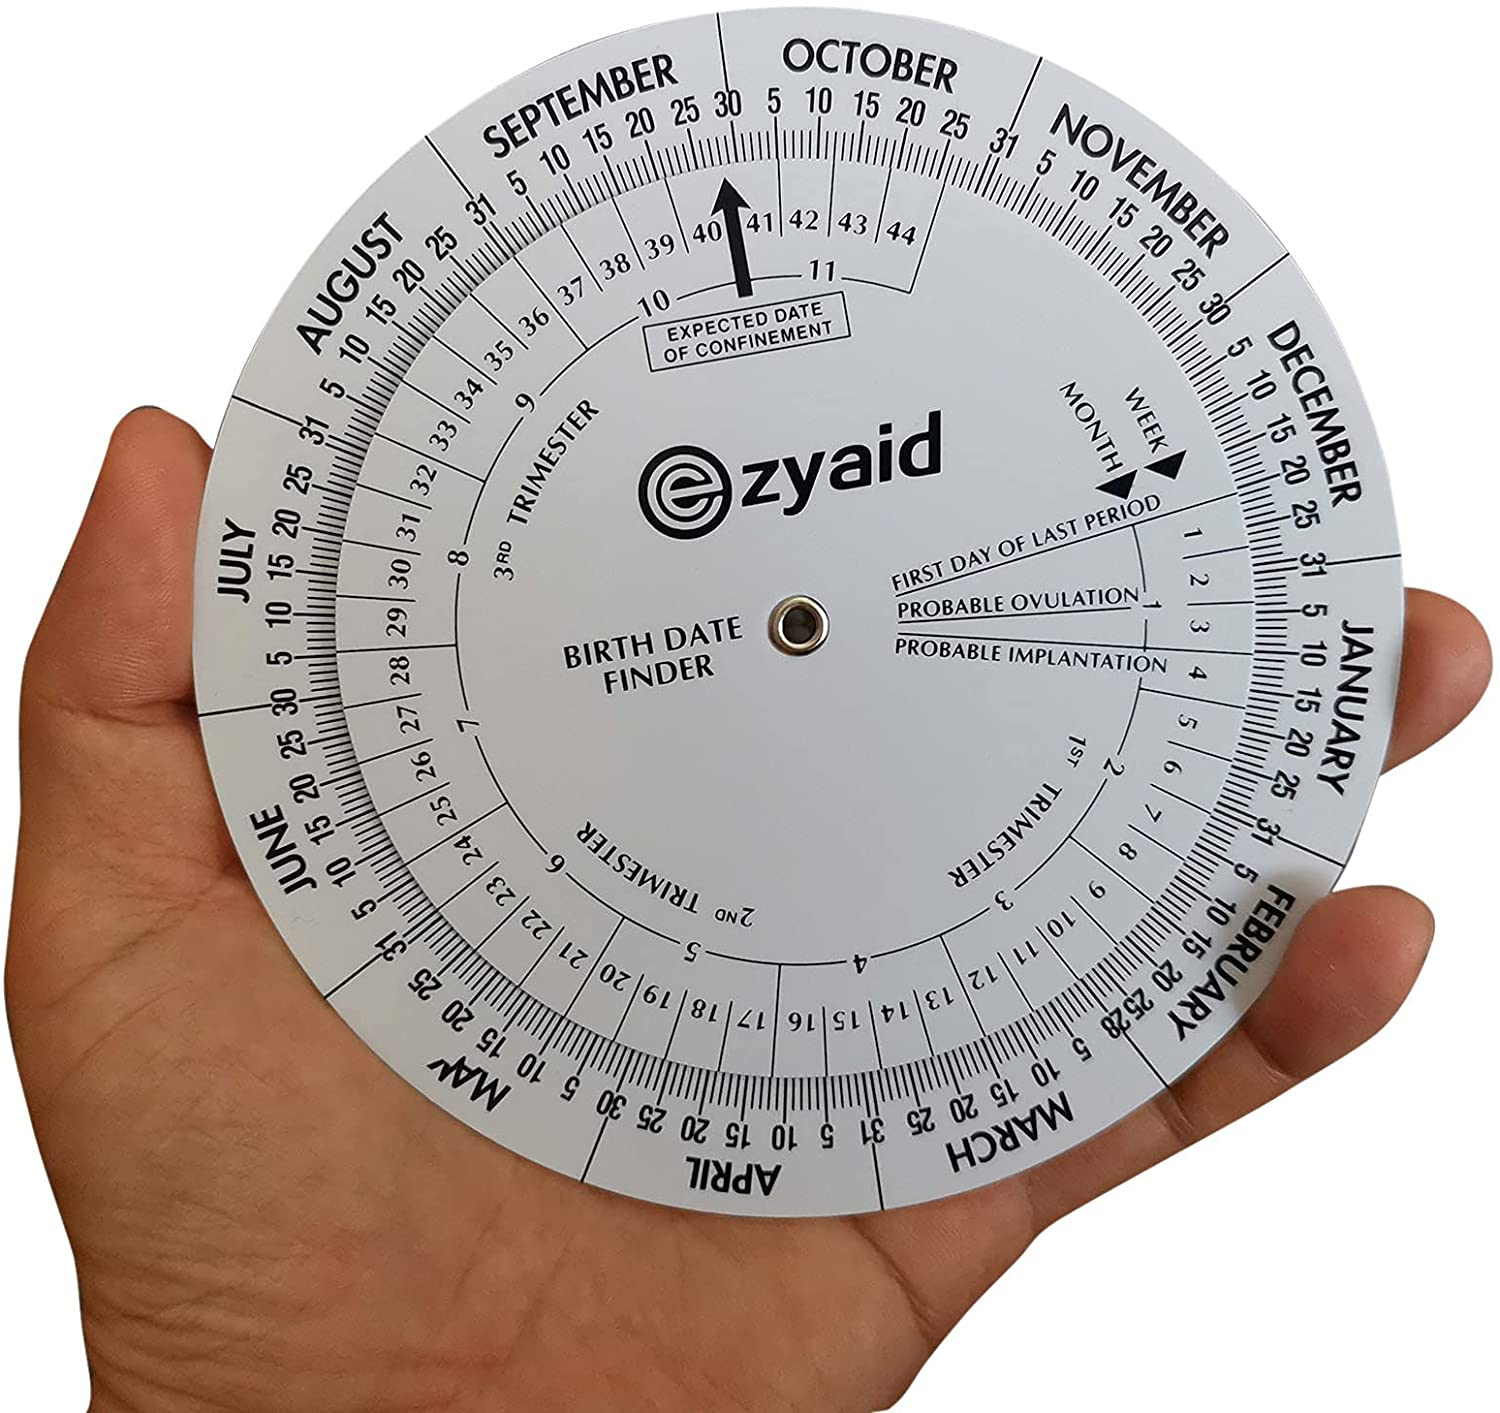 Ezyaid Pregnancy Wheel, Pregnant Due Date Calculator for OB-GYN, Gestation Wheel Calculator for Midwives, Nurses, Patients, and Doctors